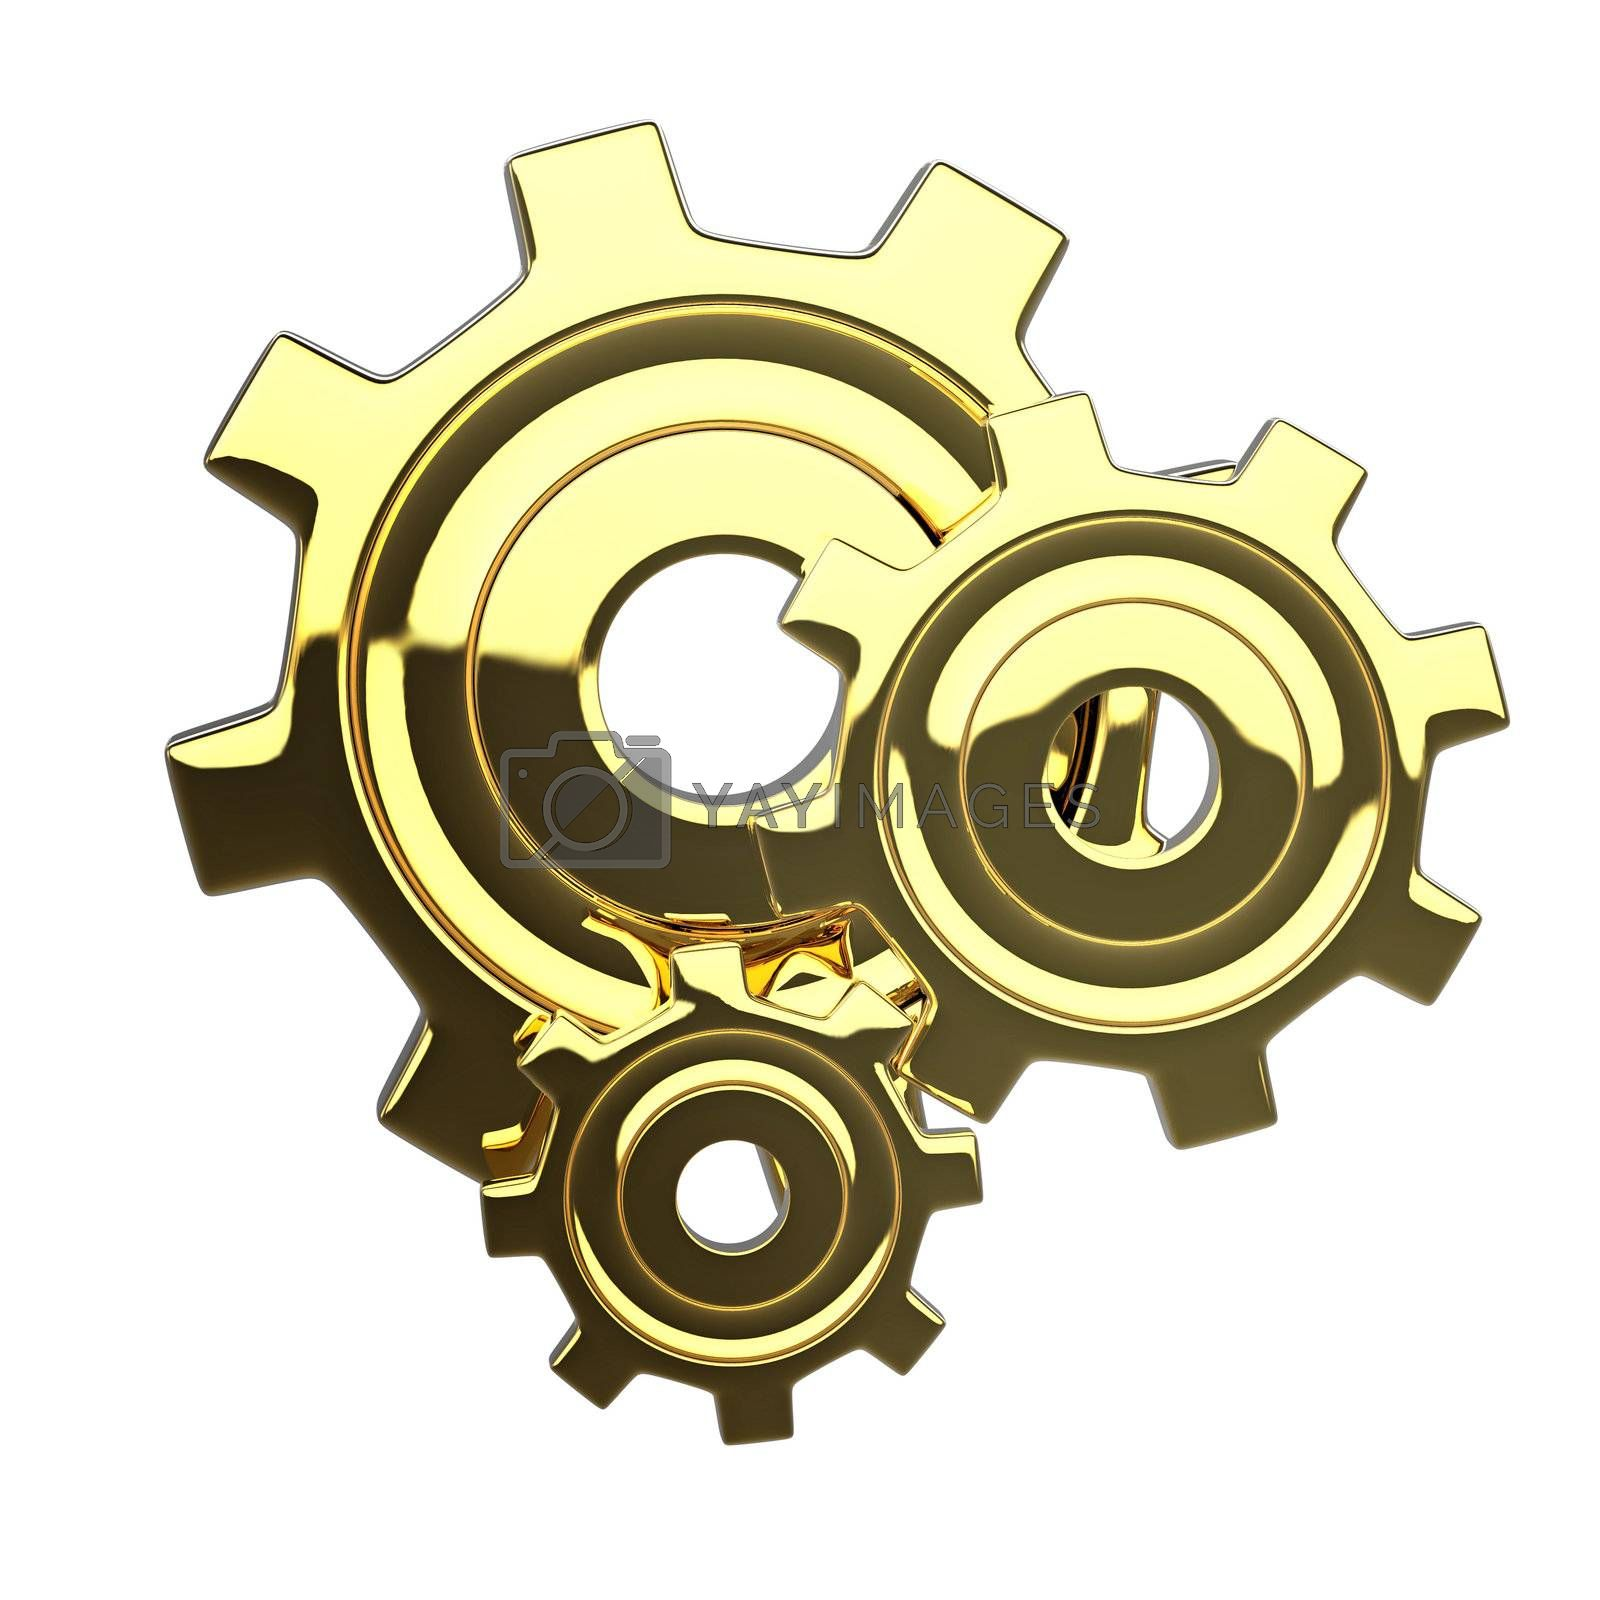 Golden 3D stile reflected isoleted gears with conceptual composition